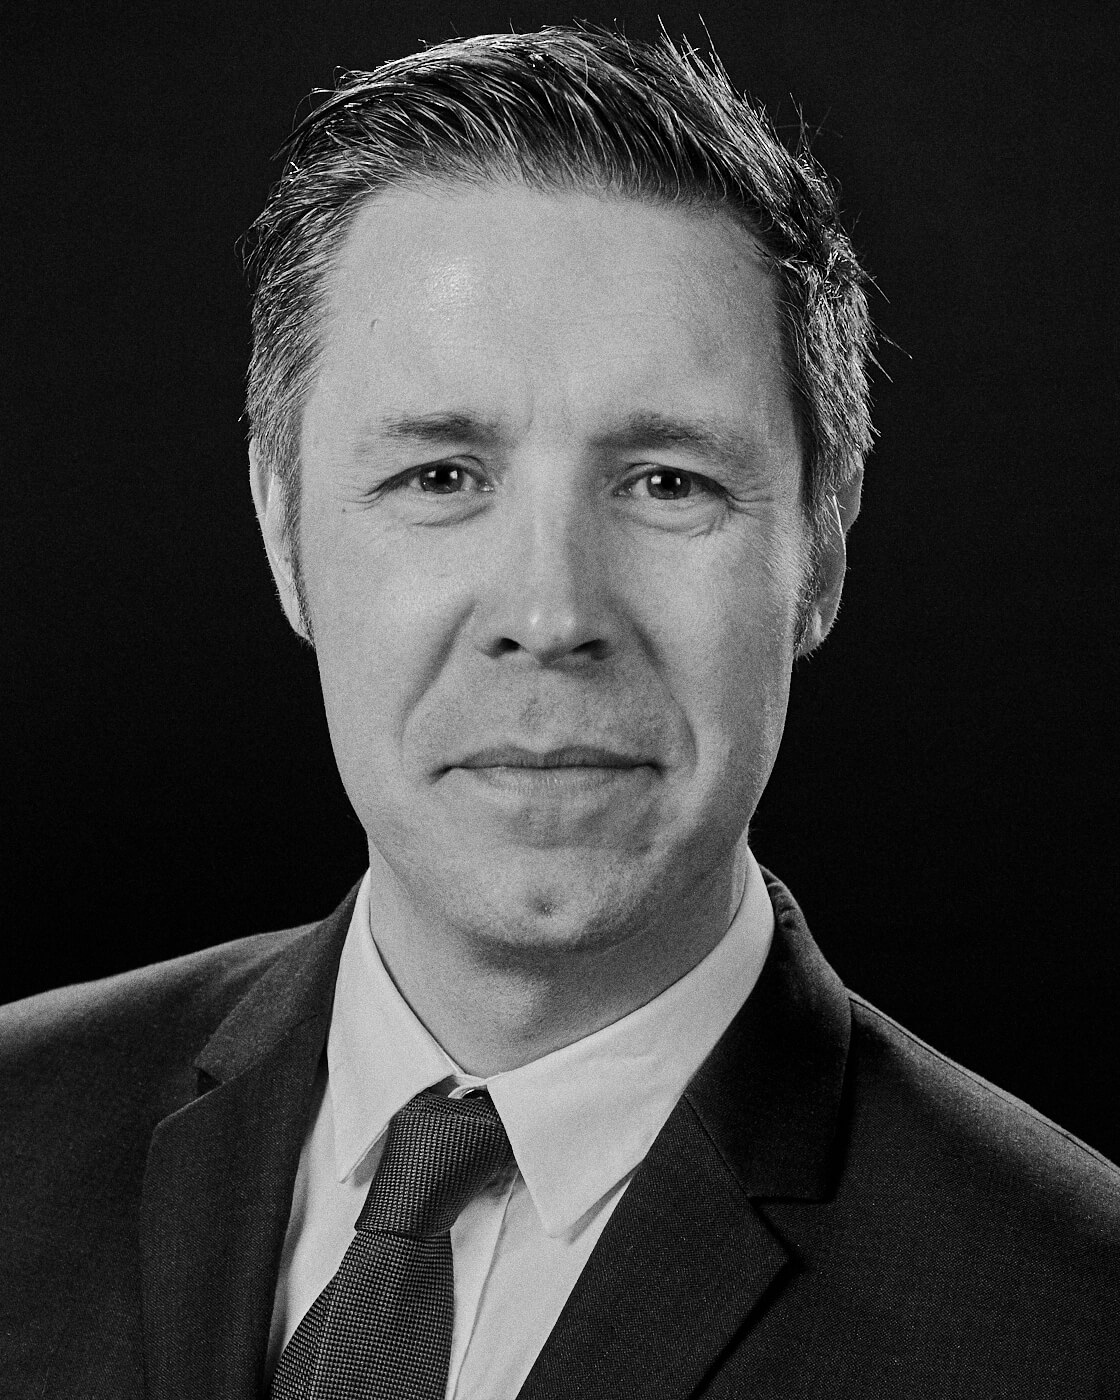 B/W, Paddy Considine,  by lifestyle photographer Tim Cole